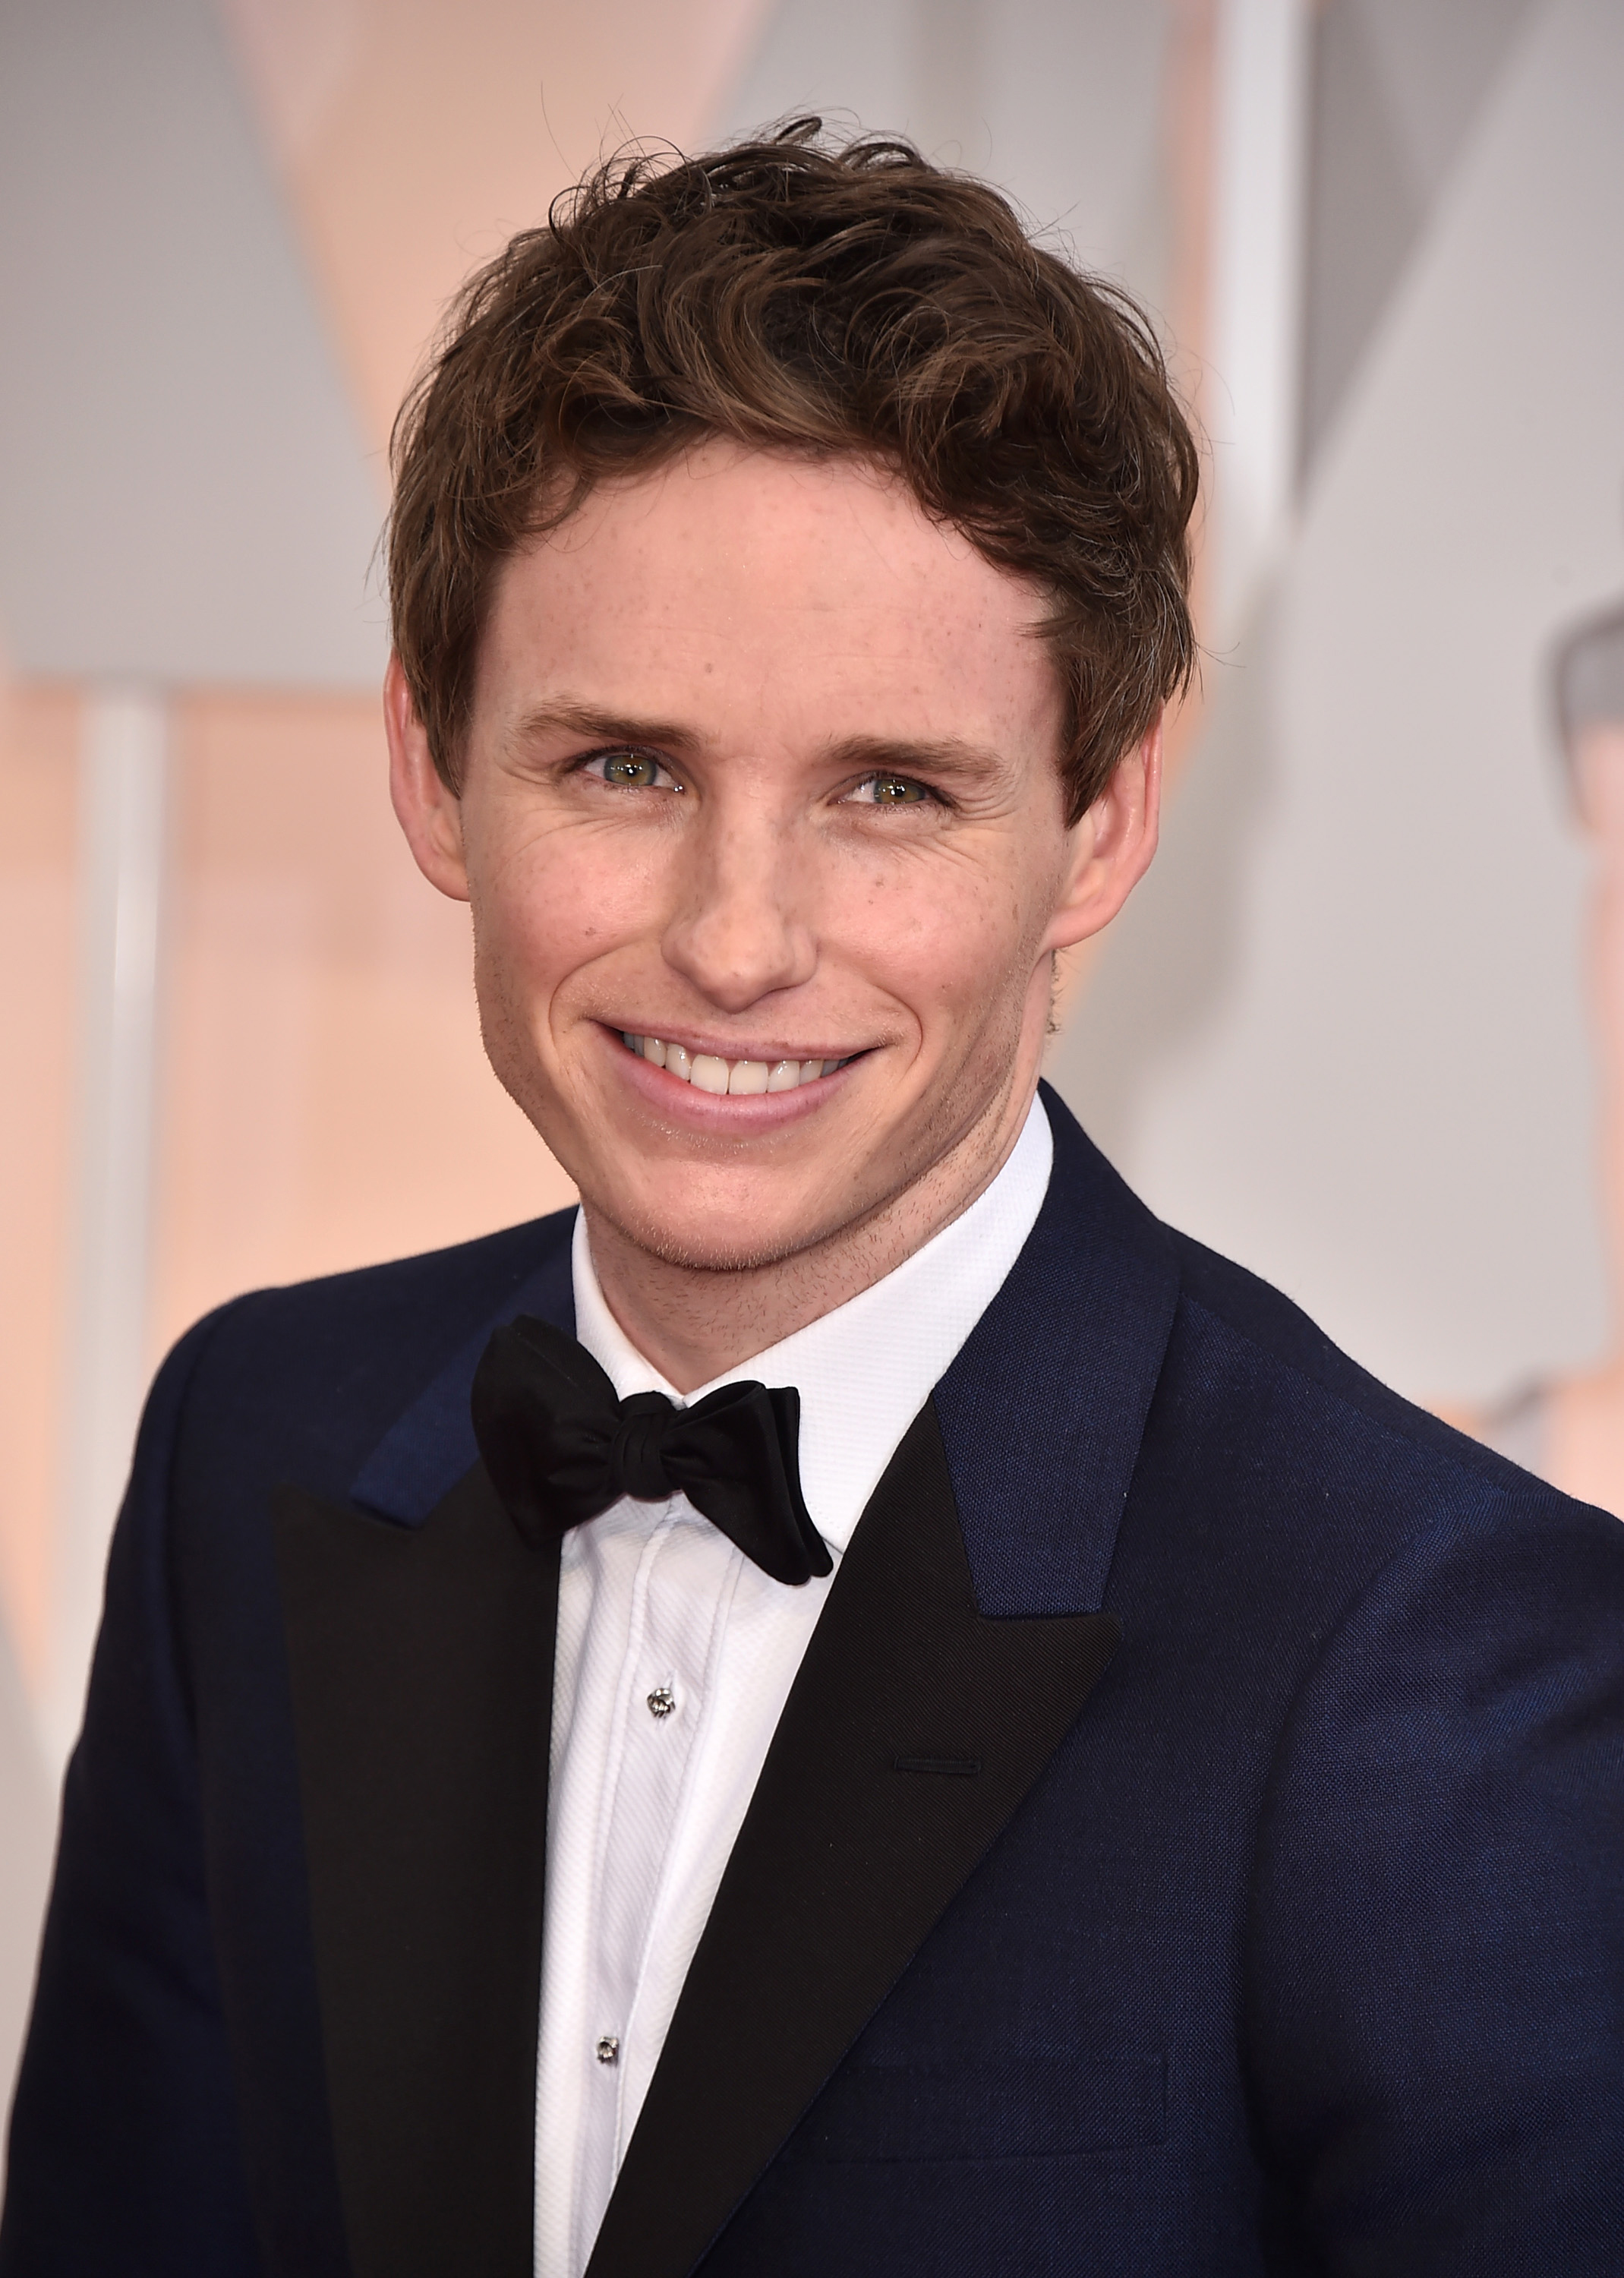 Eddie Redmayne arrives at the Oscars on Sunday, Feb. 22, 2015, at the Dolby Theatre in Los Angeles.